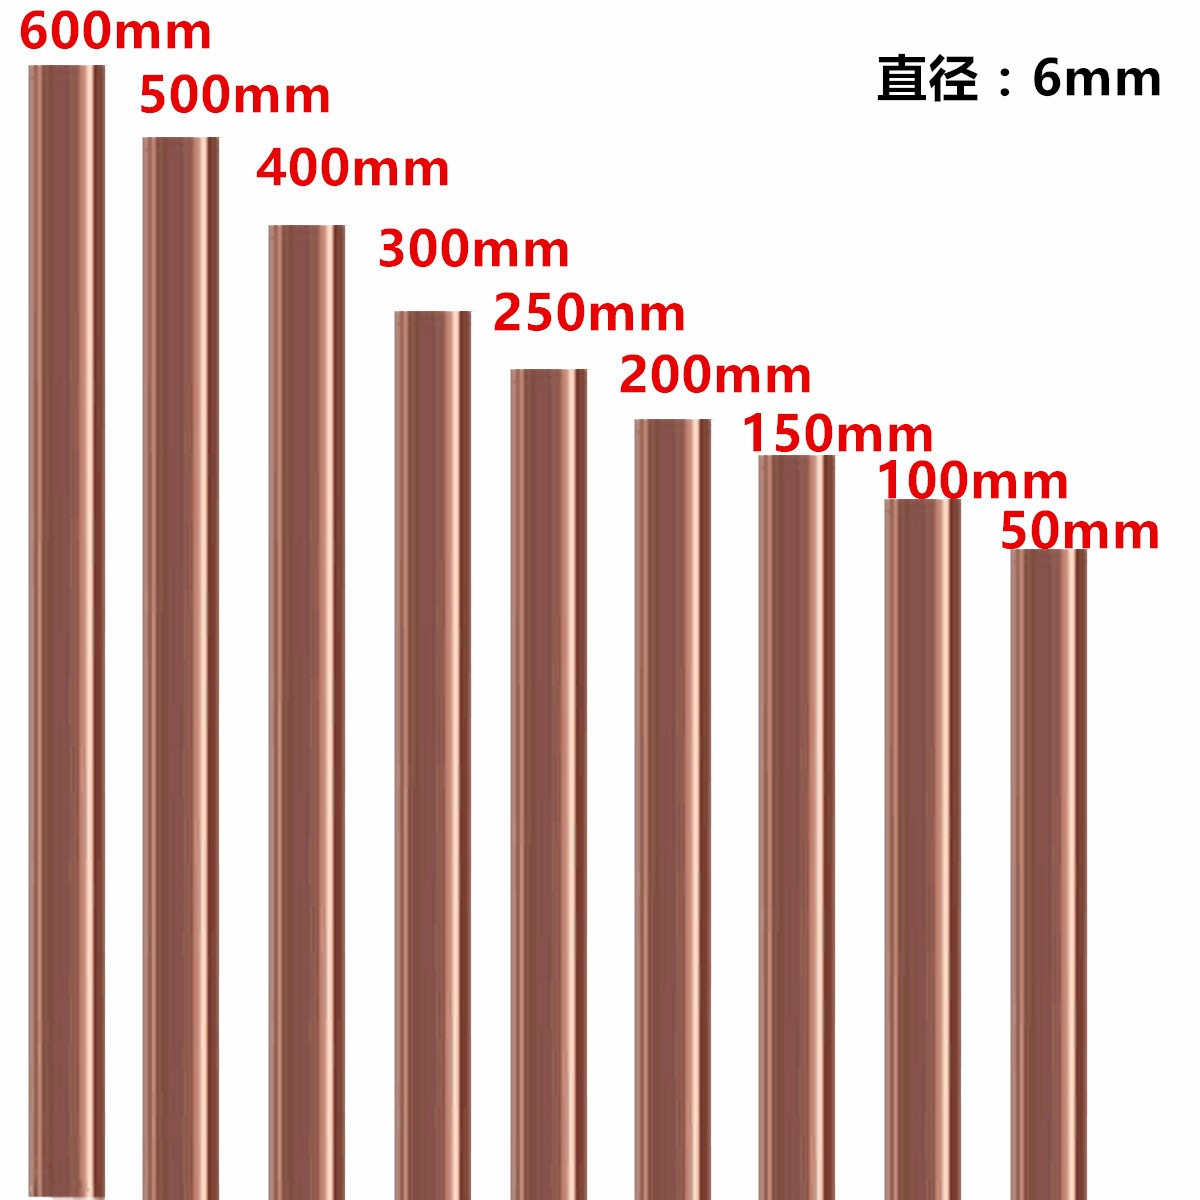 6mm Diameter 50-600mm Copper Round Bar Rod for Milling Welding Metalworking цена